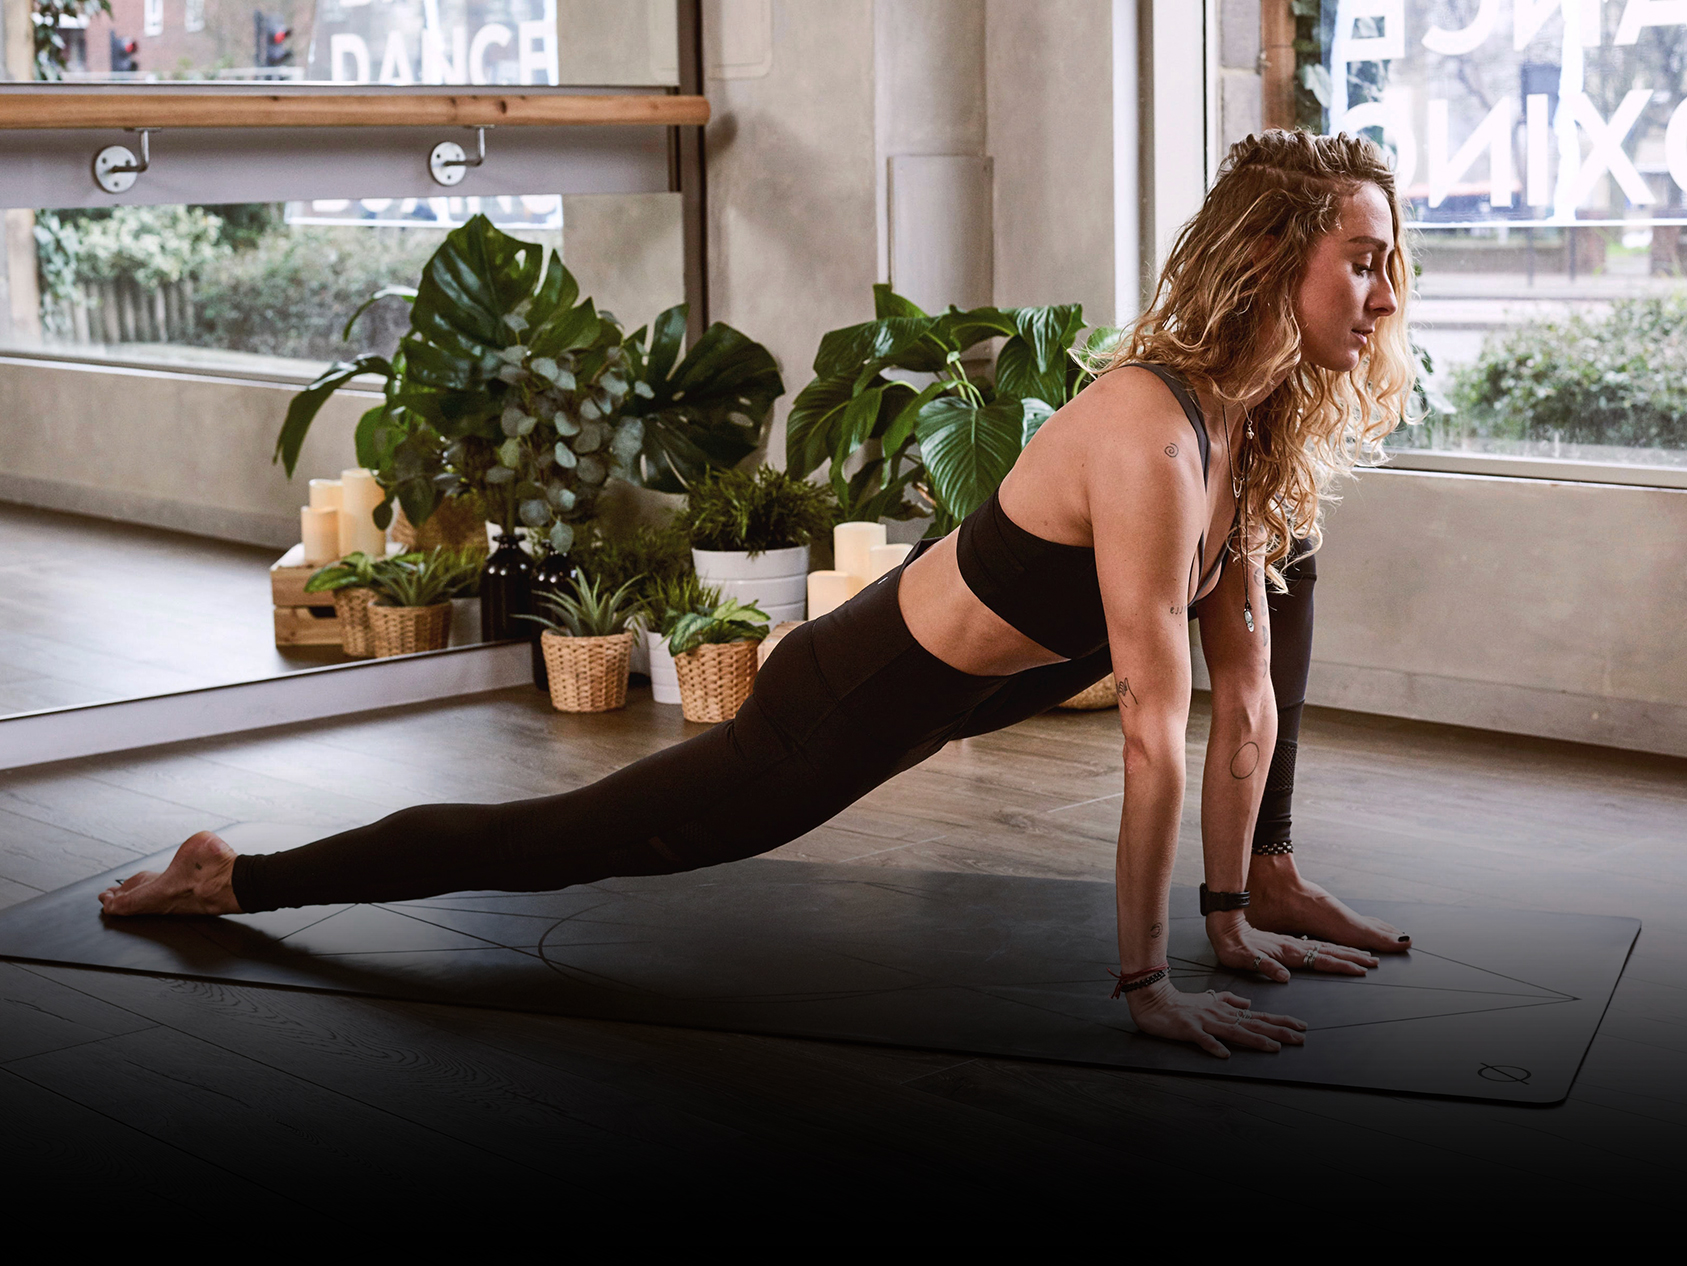 Workout From Home: The Best Equipment, Workouts and Activewear